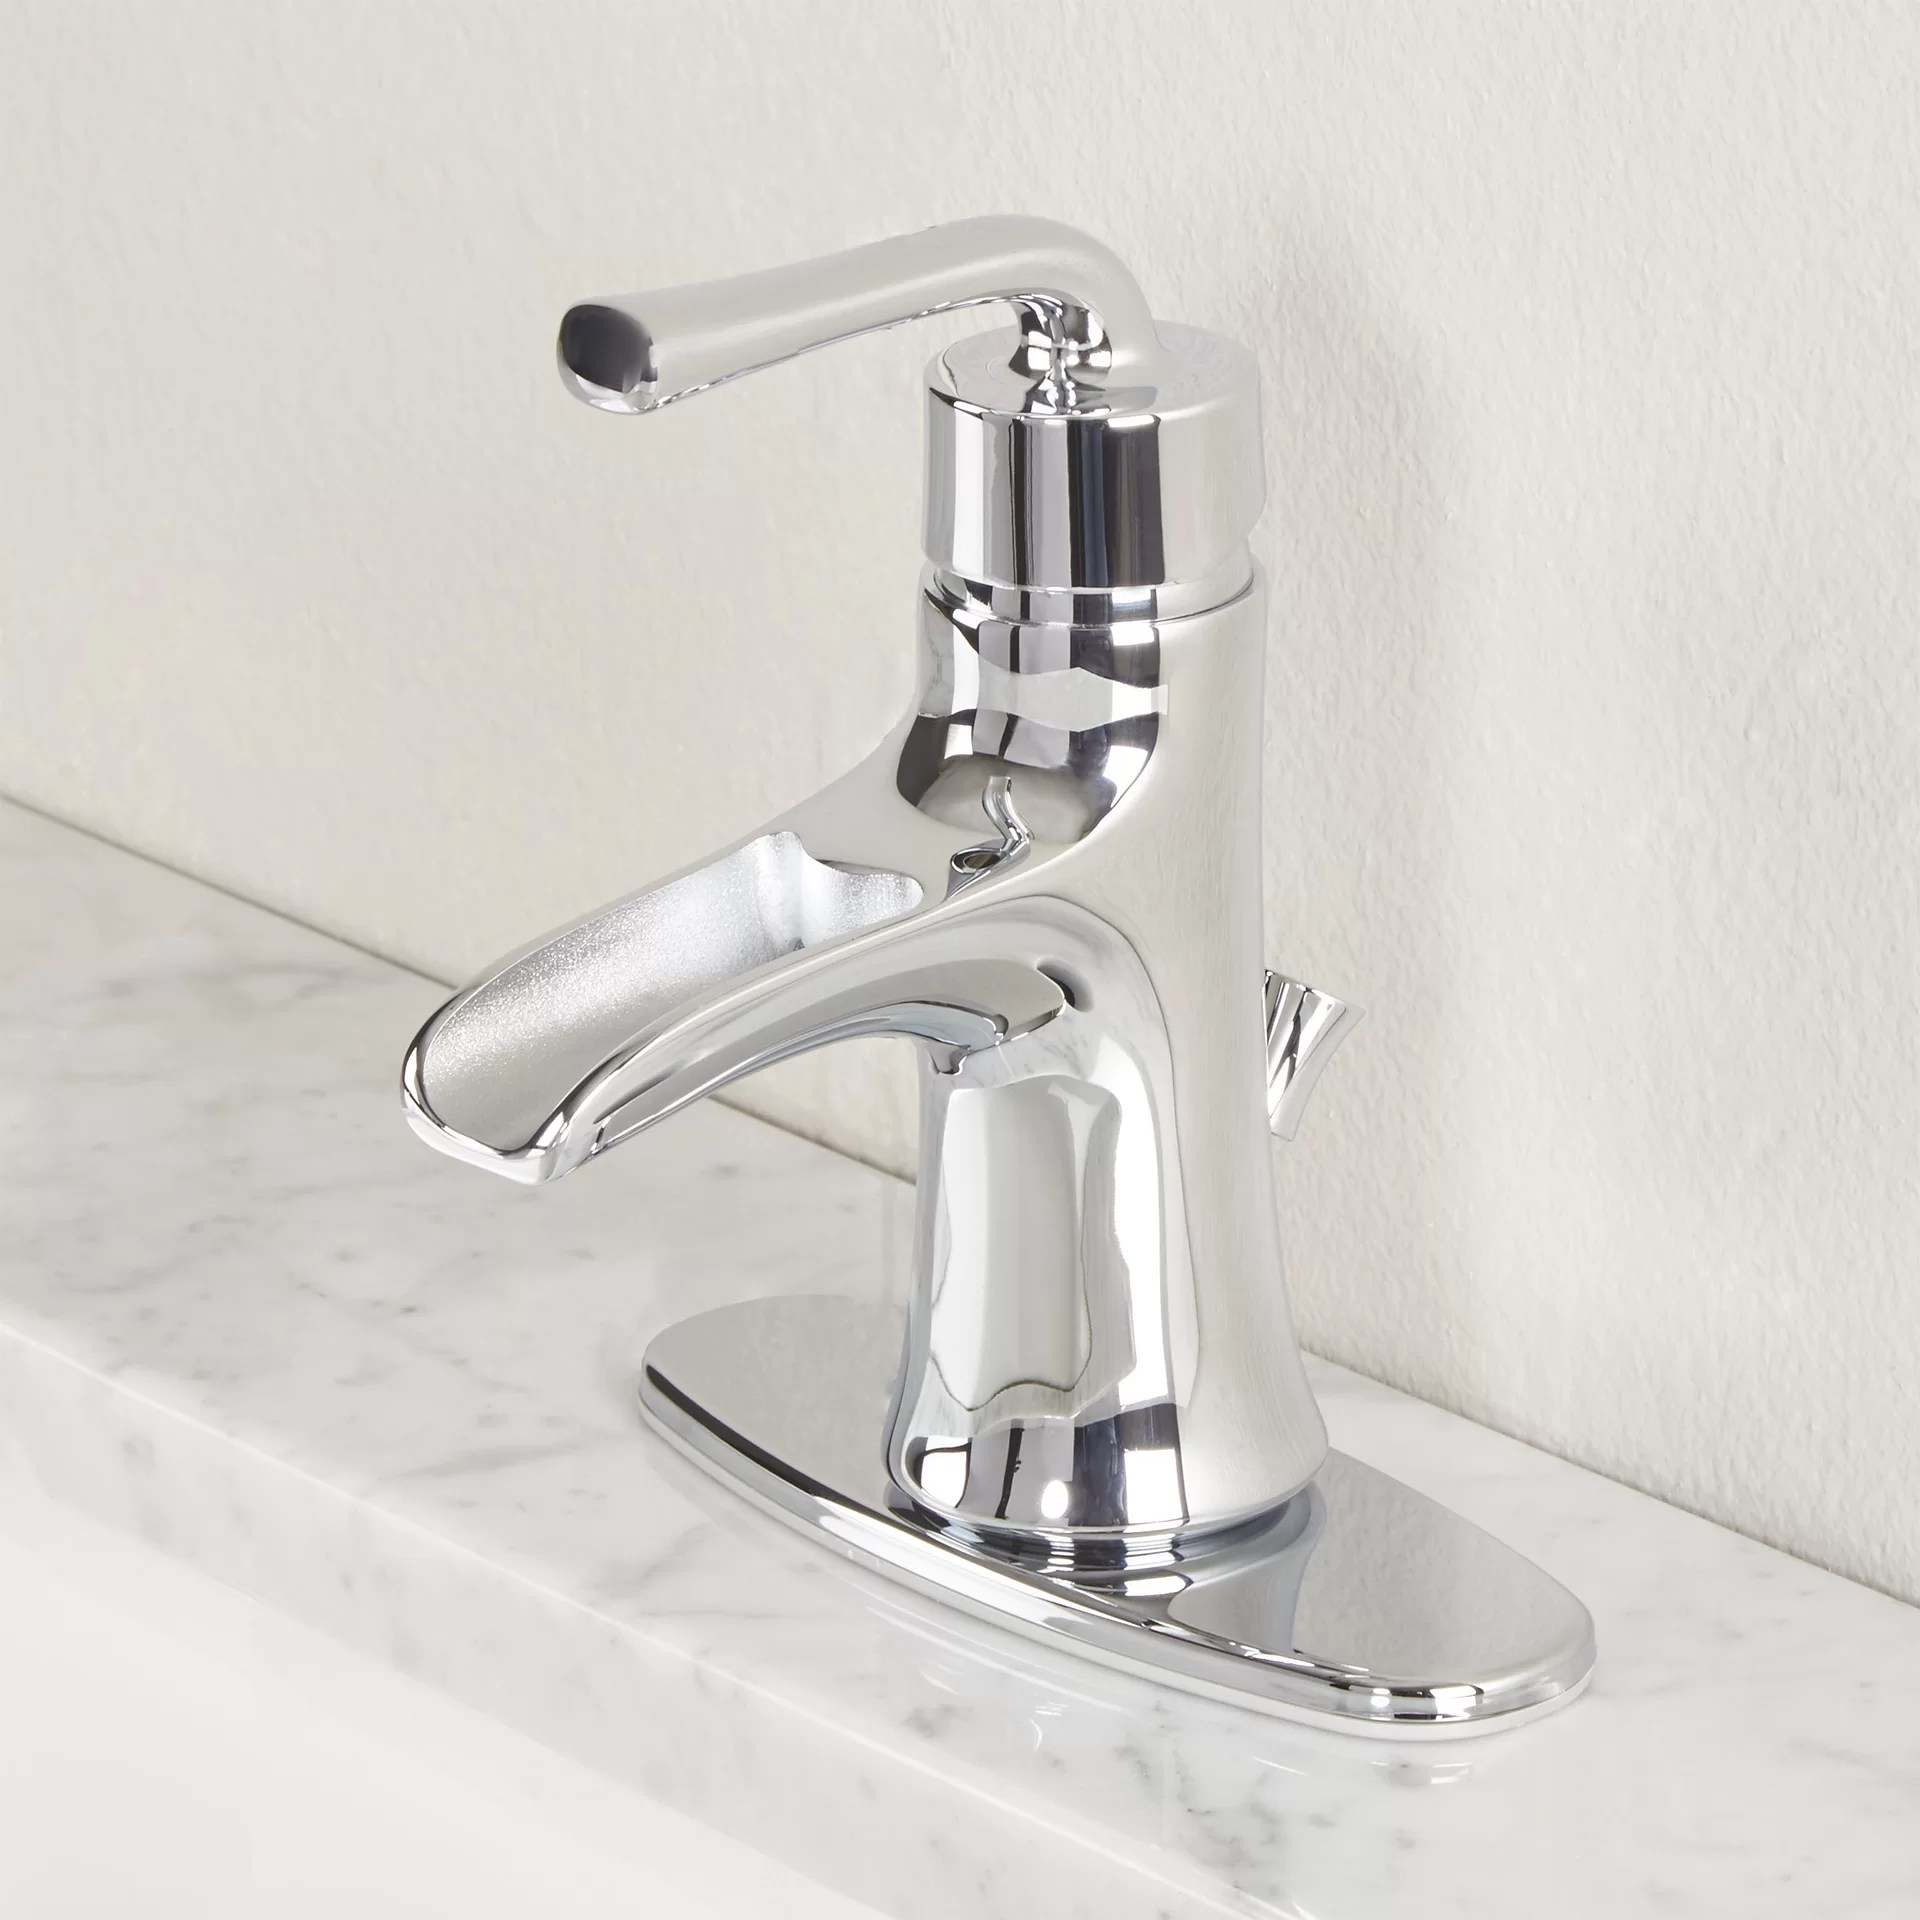 Faucet Premier Faucet Sanibel Single Handle Bathroom Faucet